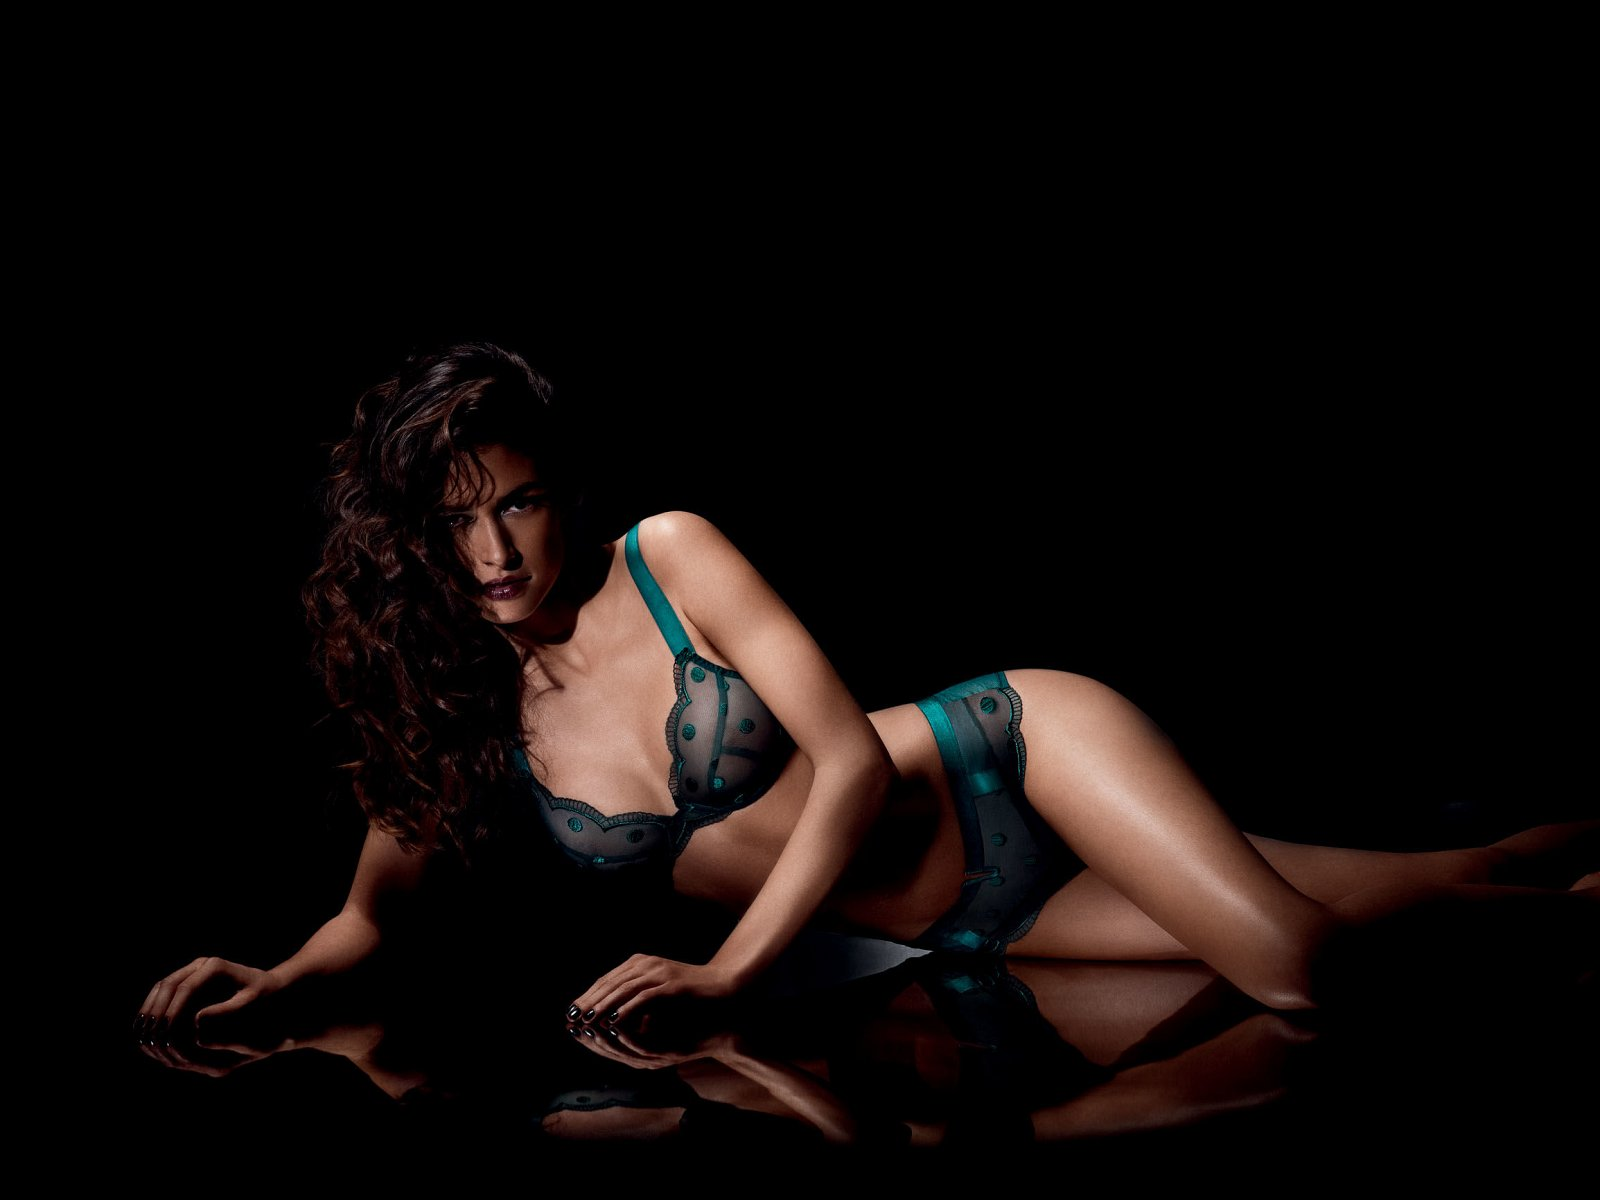 Implicite Herbst/Winter 2013-2014 - Dessous - 1